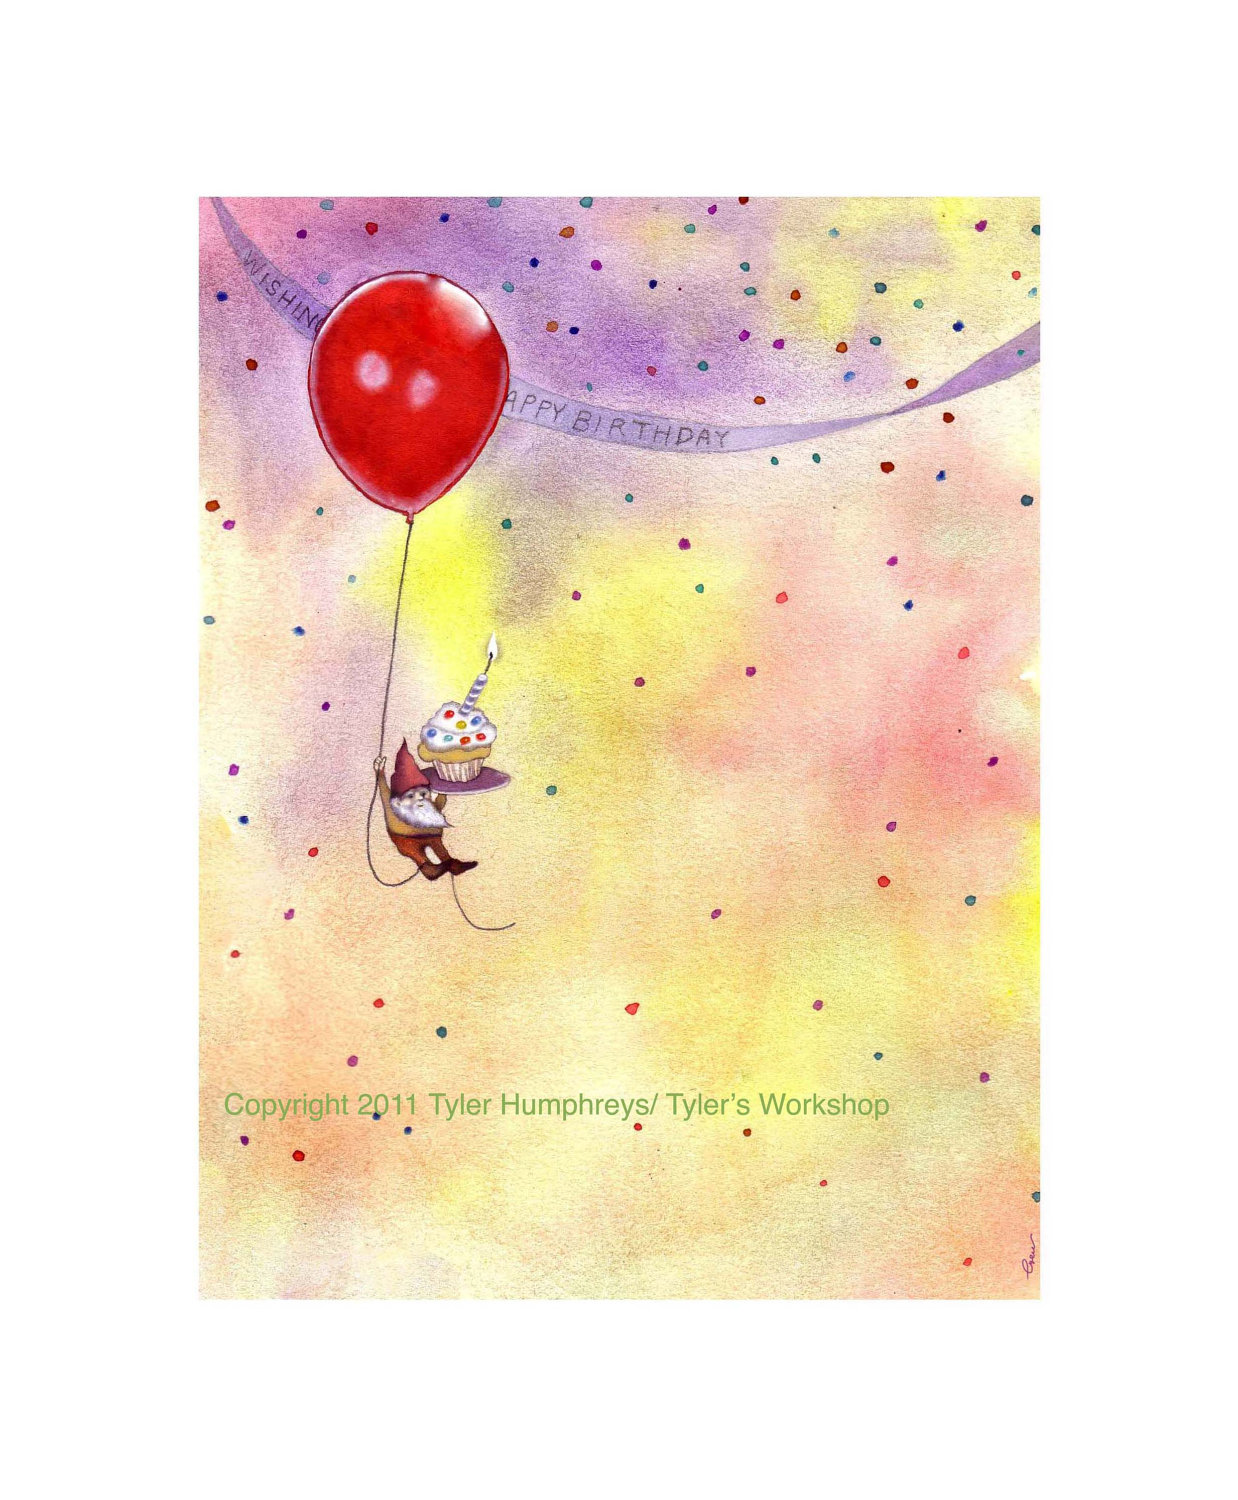 1238x1500 Watercolor Birthday Card Intended For Ucwords] Card Design Ideas